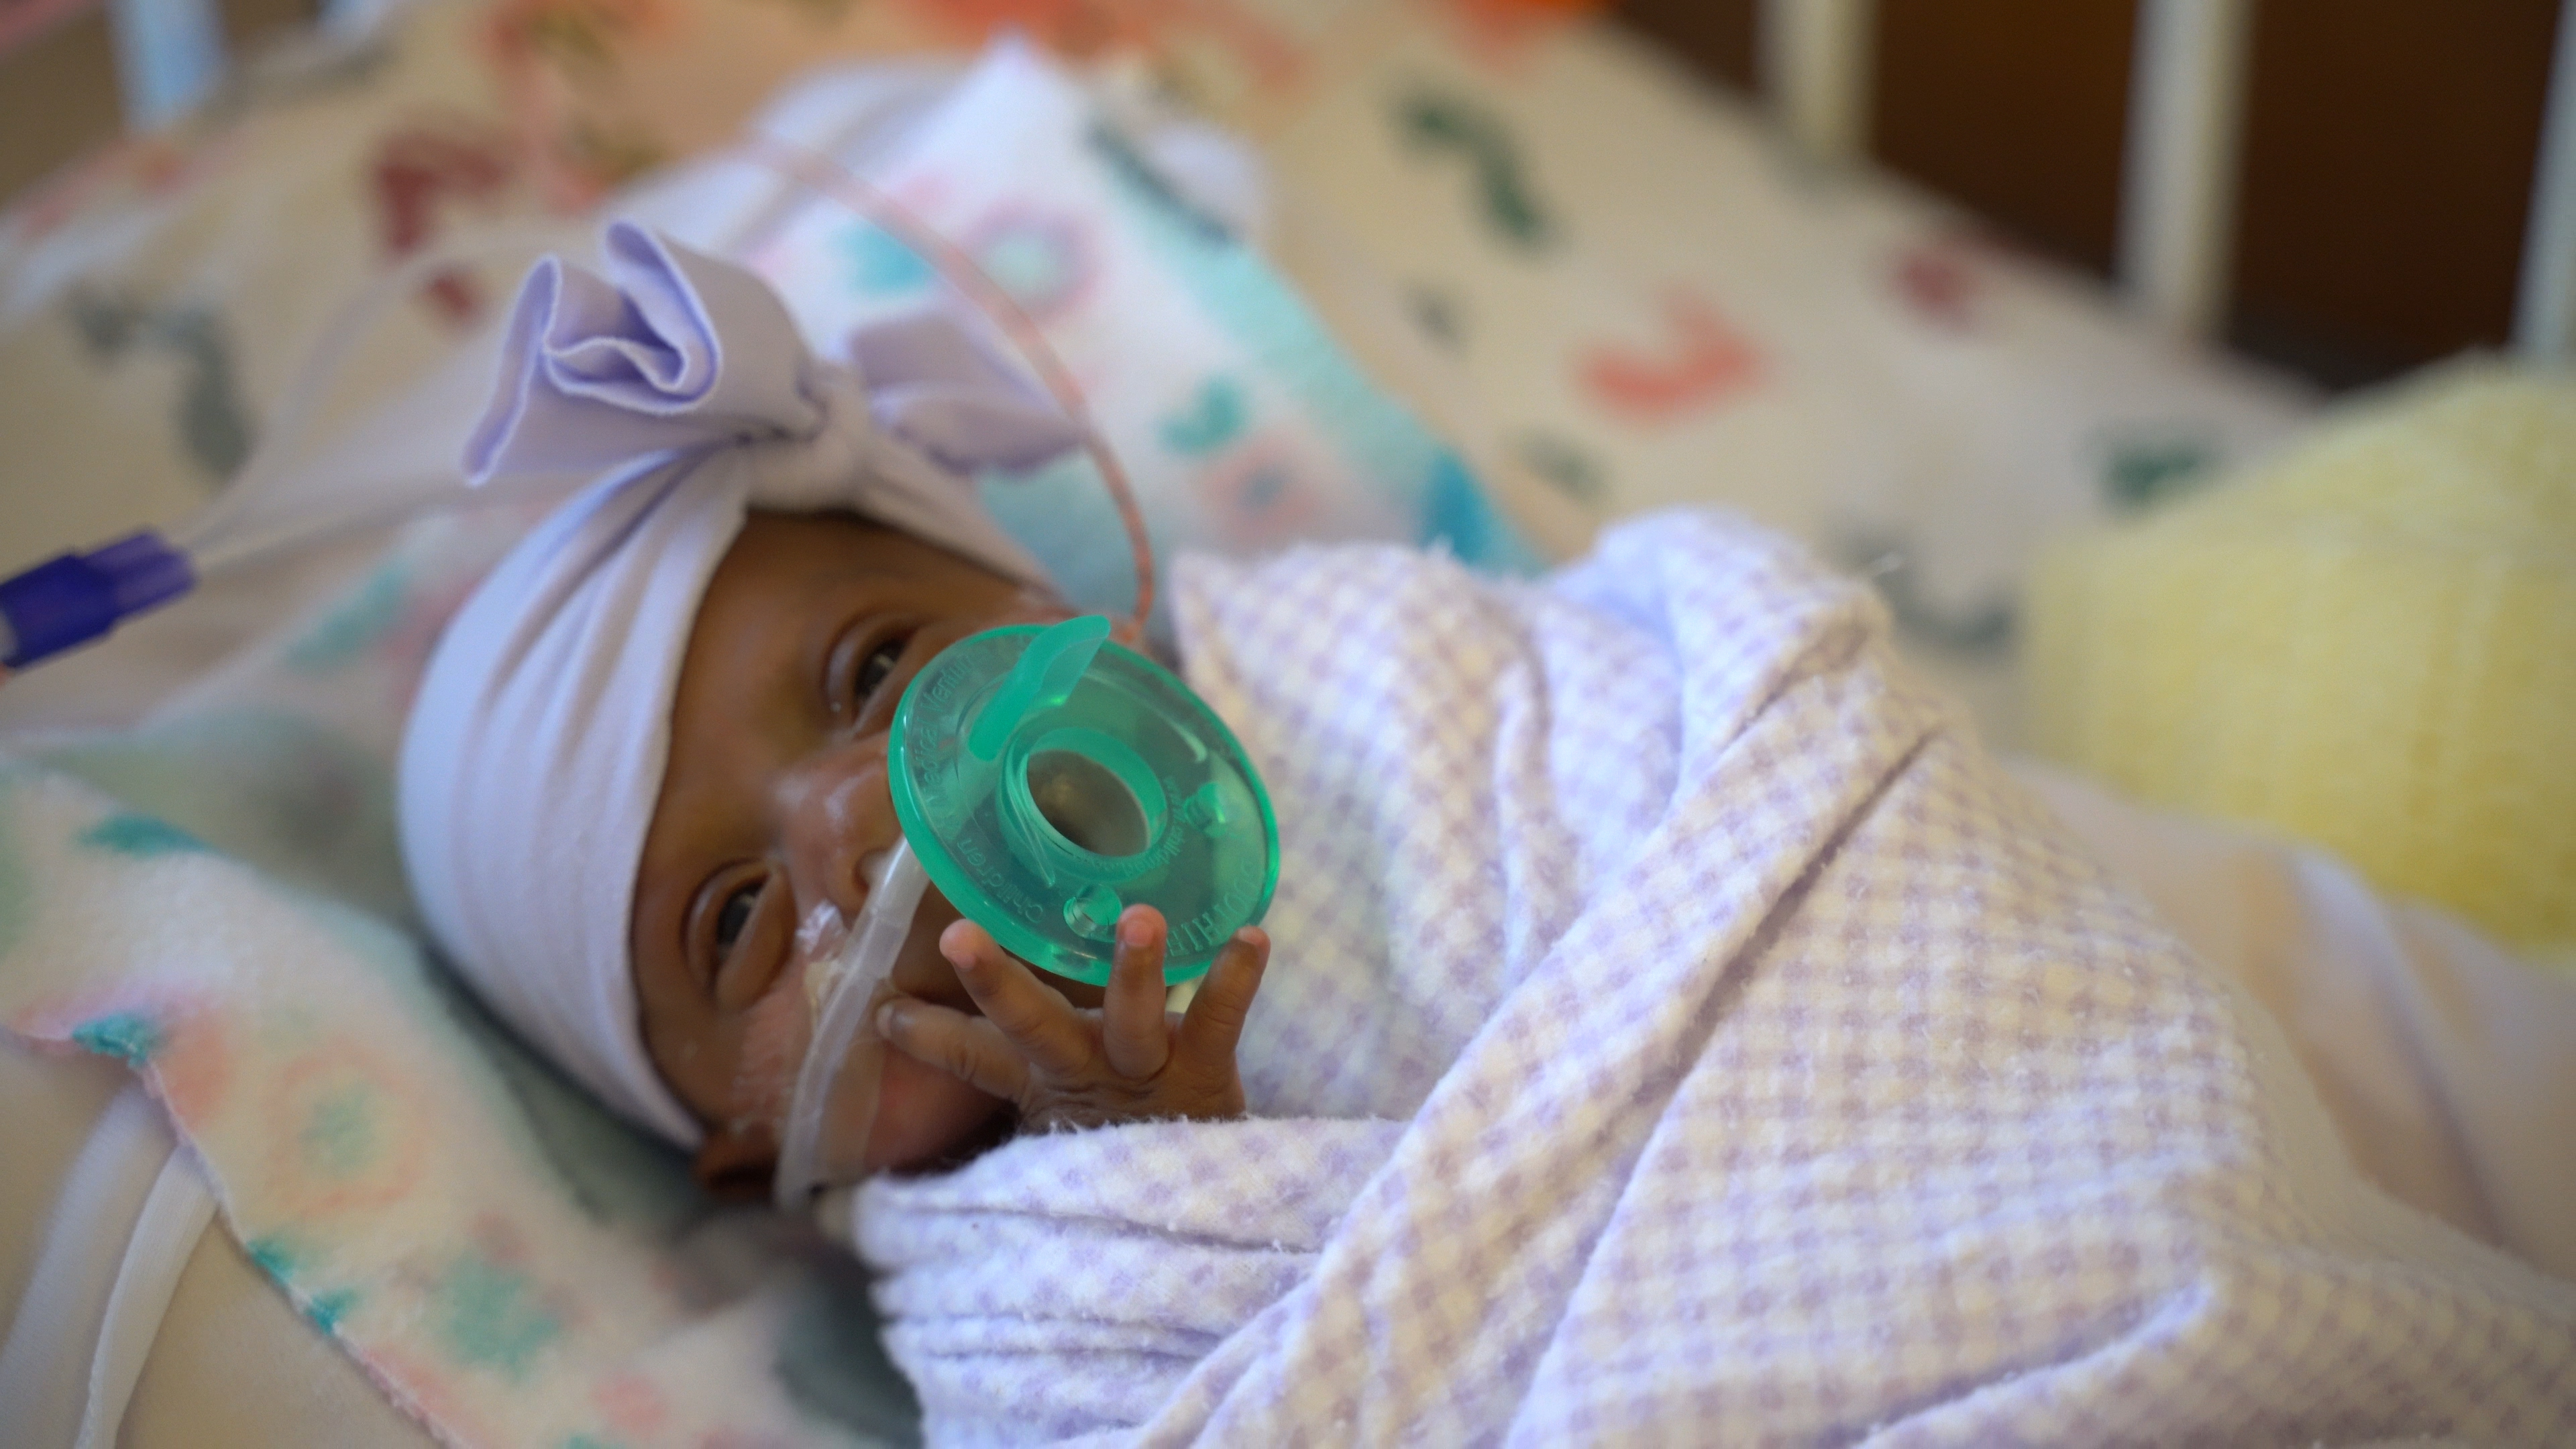 Baby Saybie weighs in at 3 pounds in March 2019. Photo courtesy Sharp HealthCare